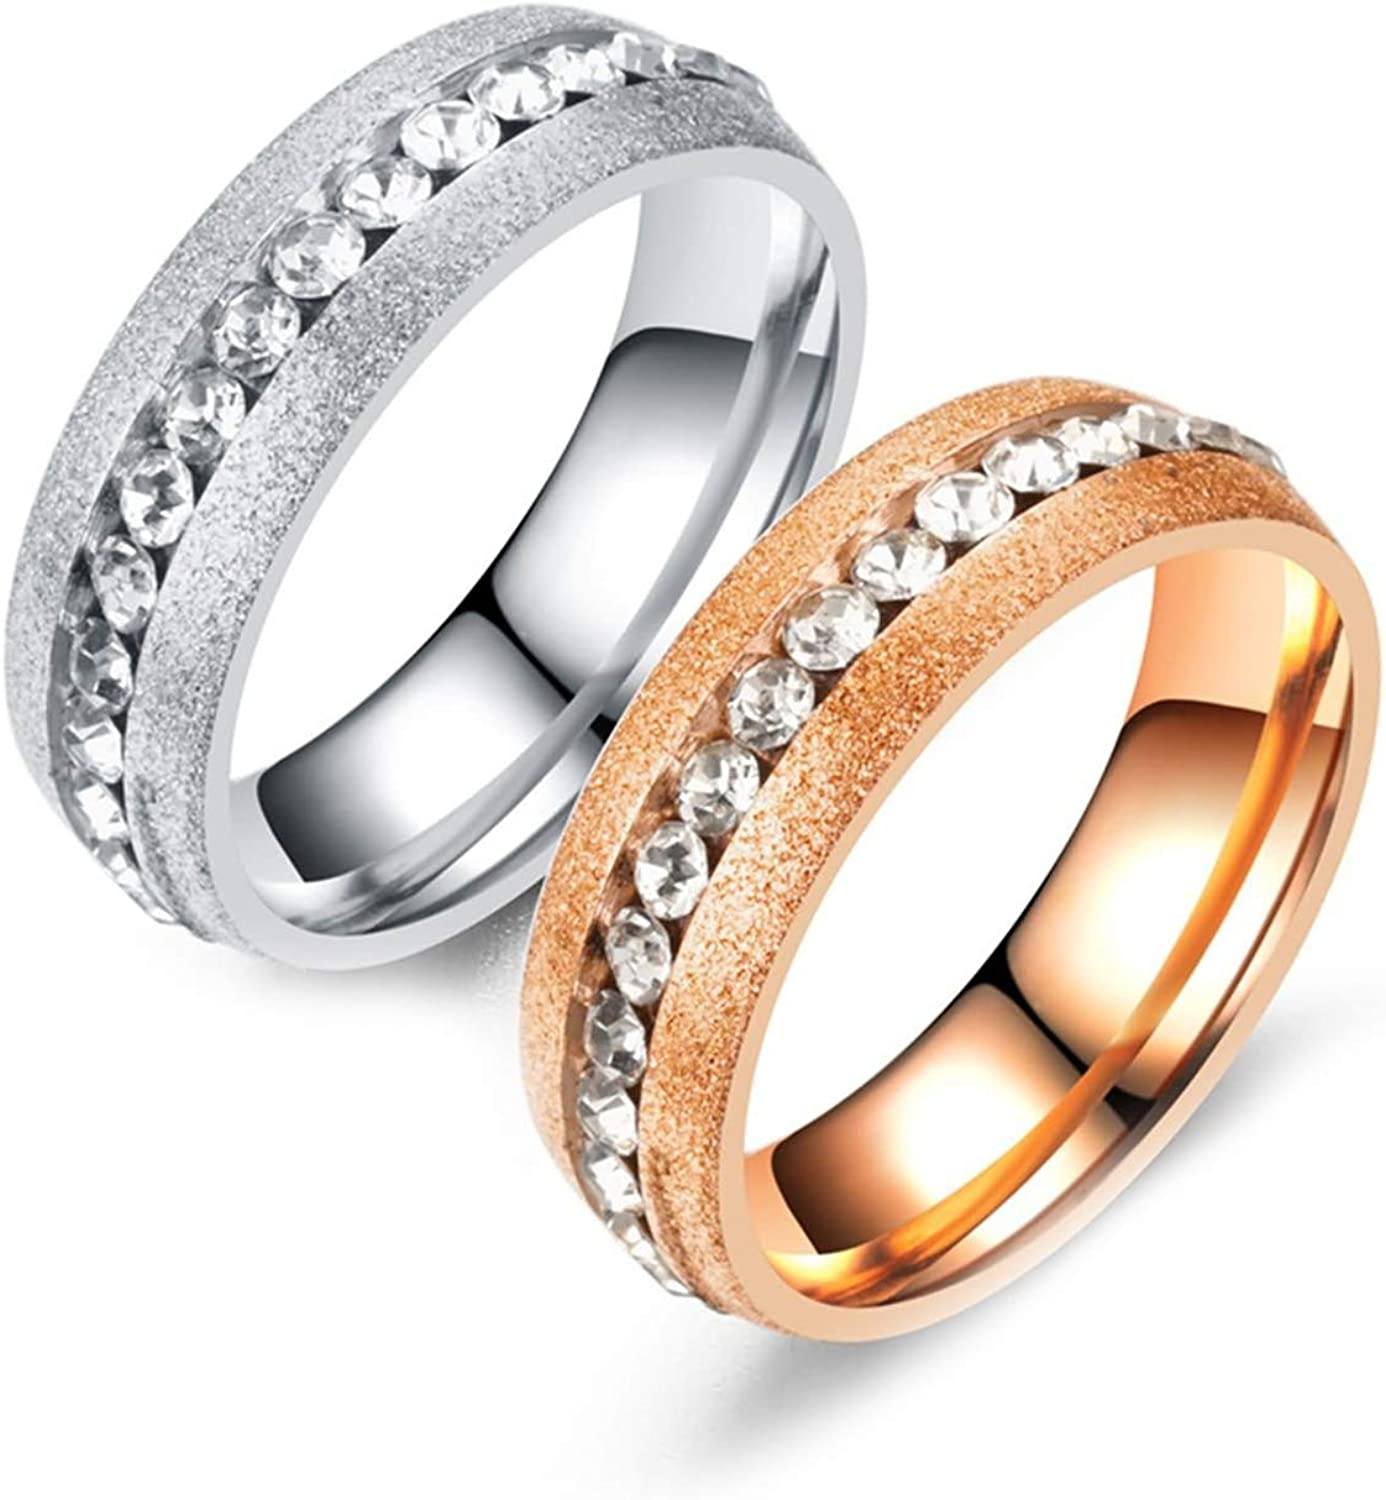 Daesar 2PCS Stainless Steel Rings His Ring Ranking TOP6 6MM and Brand new Hers Ro